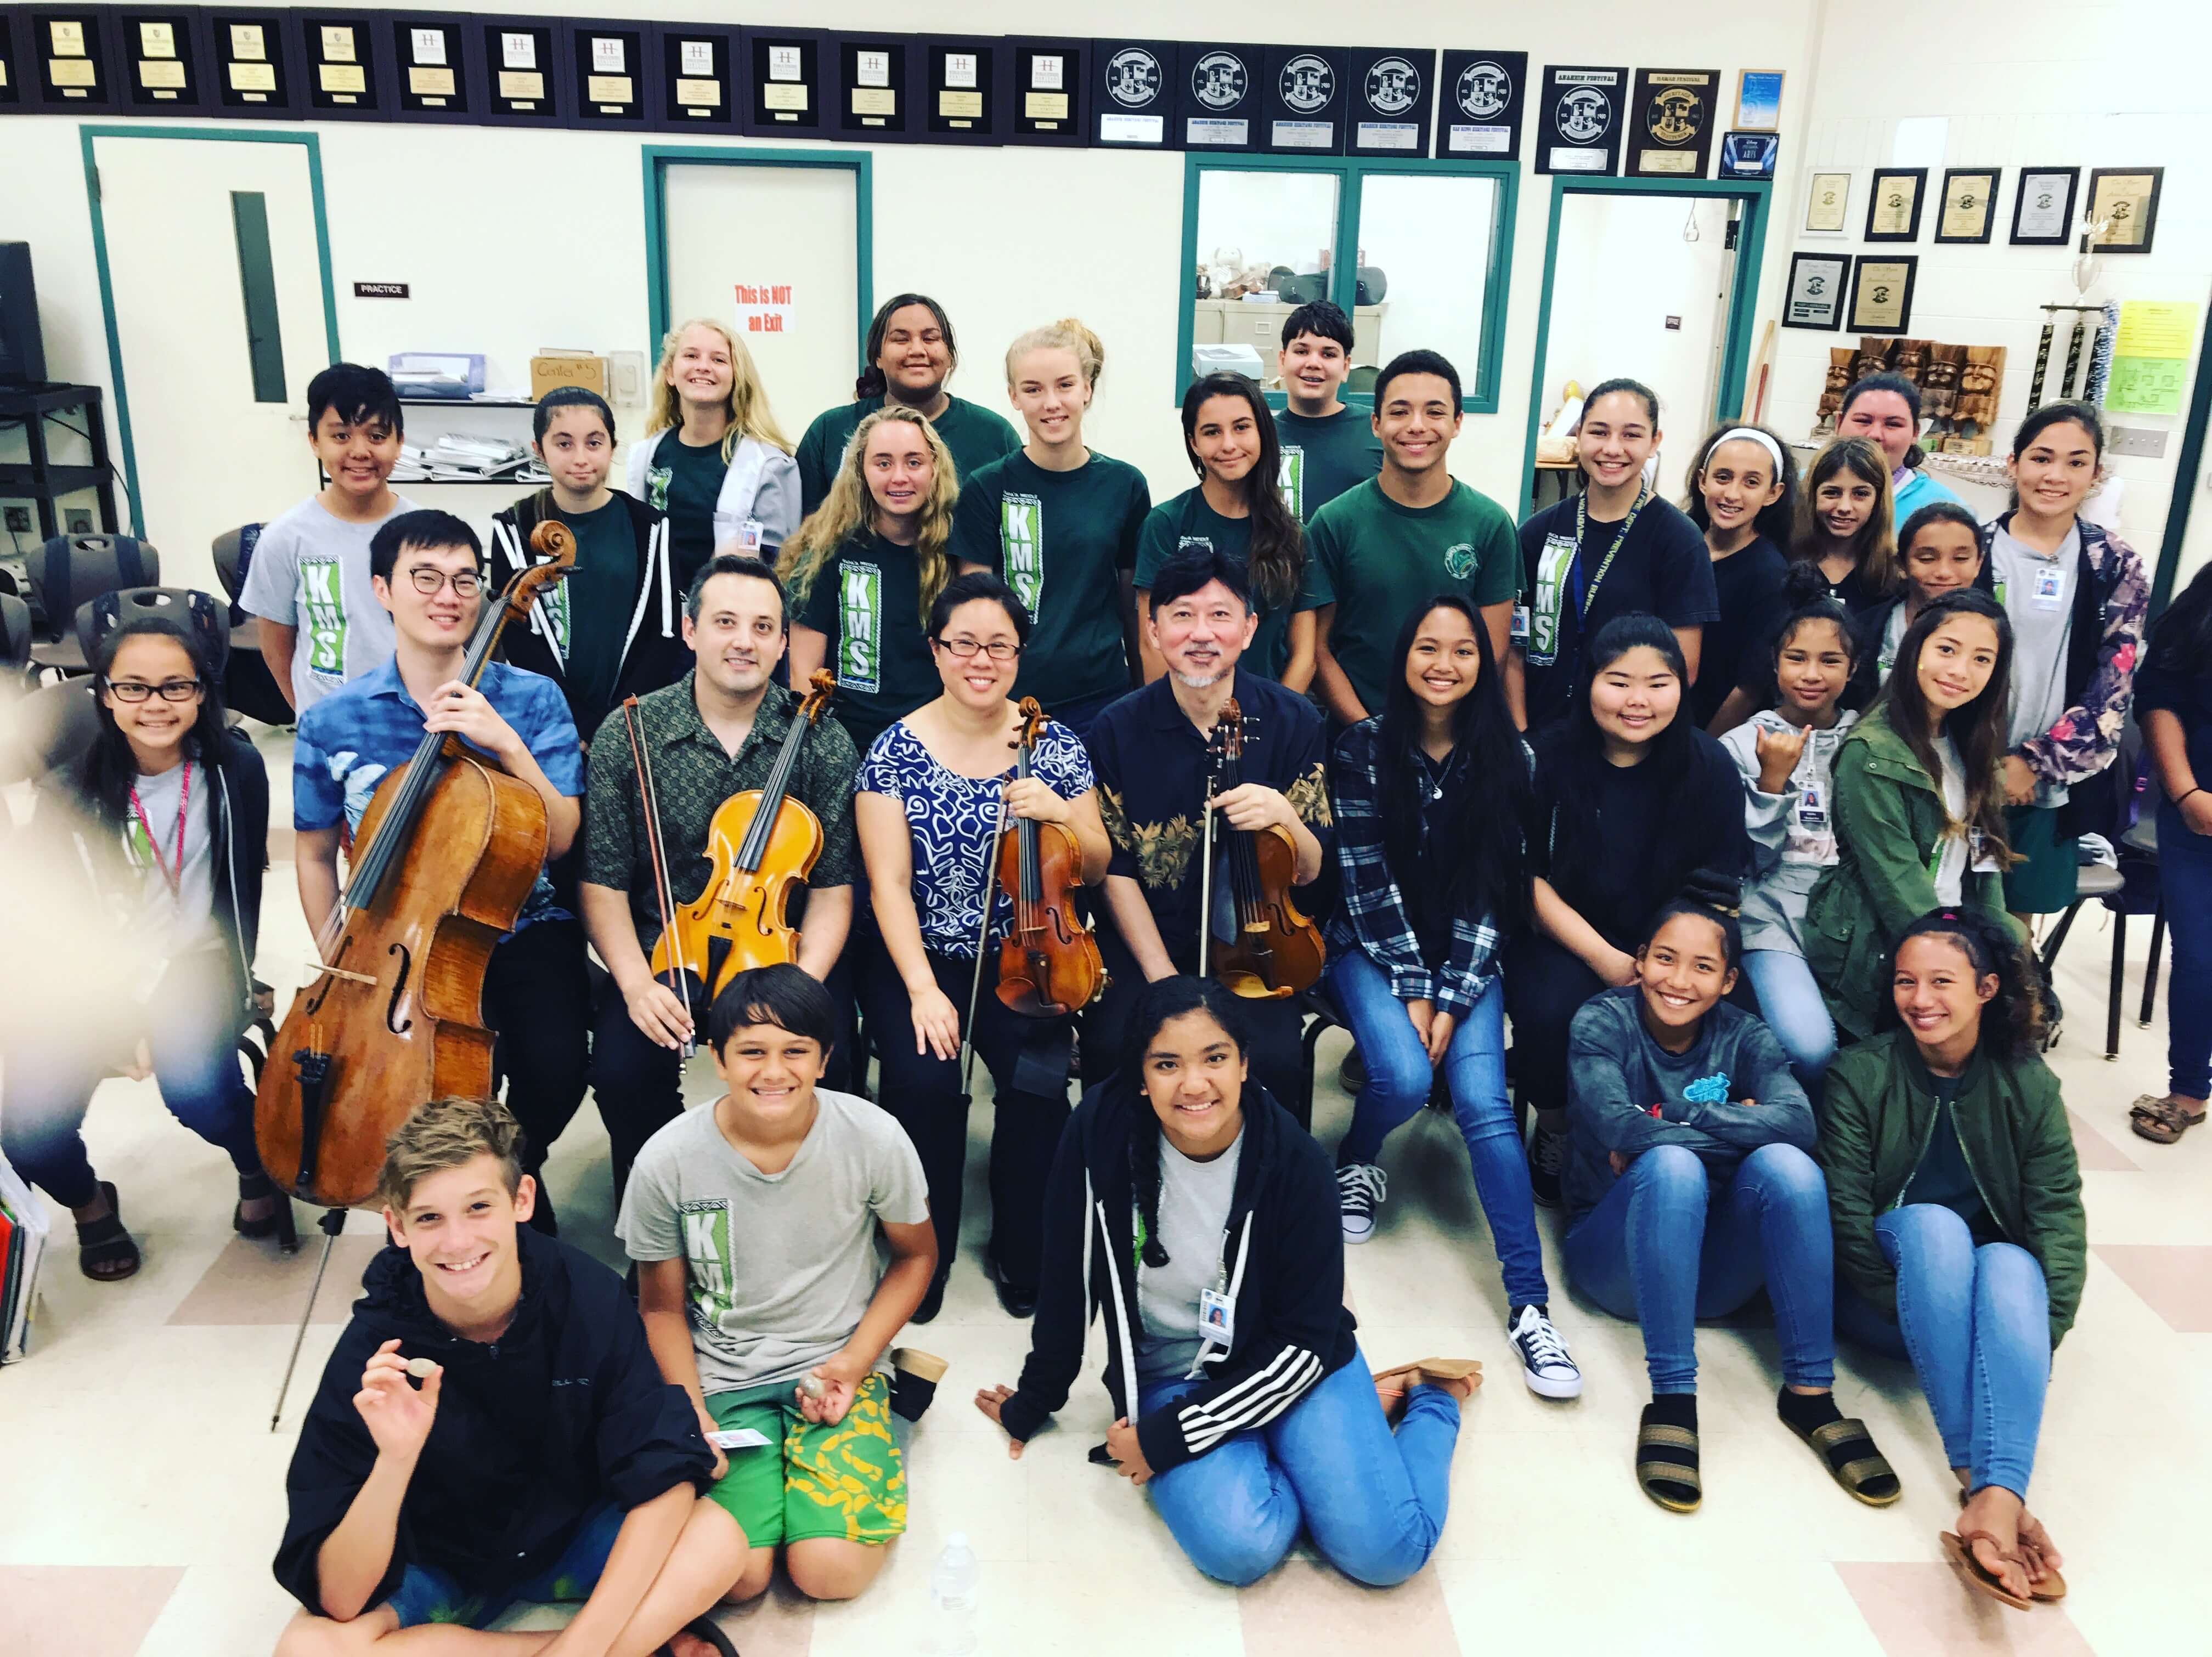 """<p class=""""lft-cnt"""">Lanai High & Elementary School has been fortunate enough to have annual visits by members of Chamber Music Hawaii's two ensembles: Spring Wind Quintet and Honolulu Brass Quintet.  These annual visits from both ensembles have been valuable assets to the development of the band program here...</p><p  class=""""rgt-cnt""""><img src=""""https://chambermusichawaii.org/wp-content/uploads/2021/04/paka-project.jpg""""></p>"""